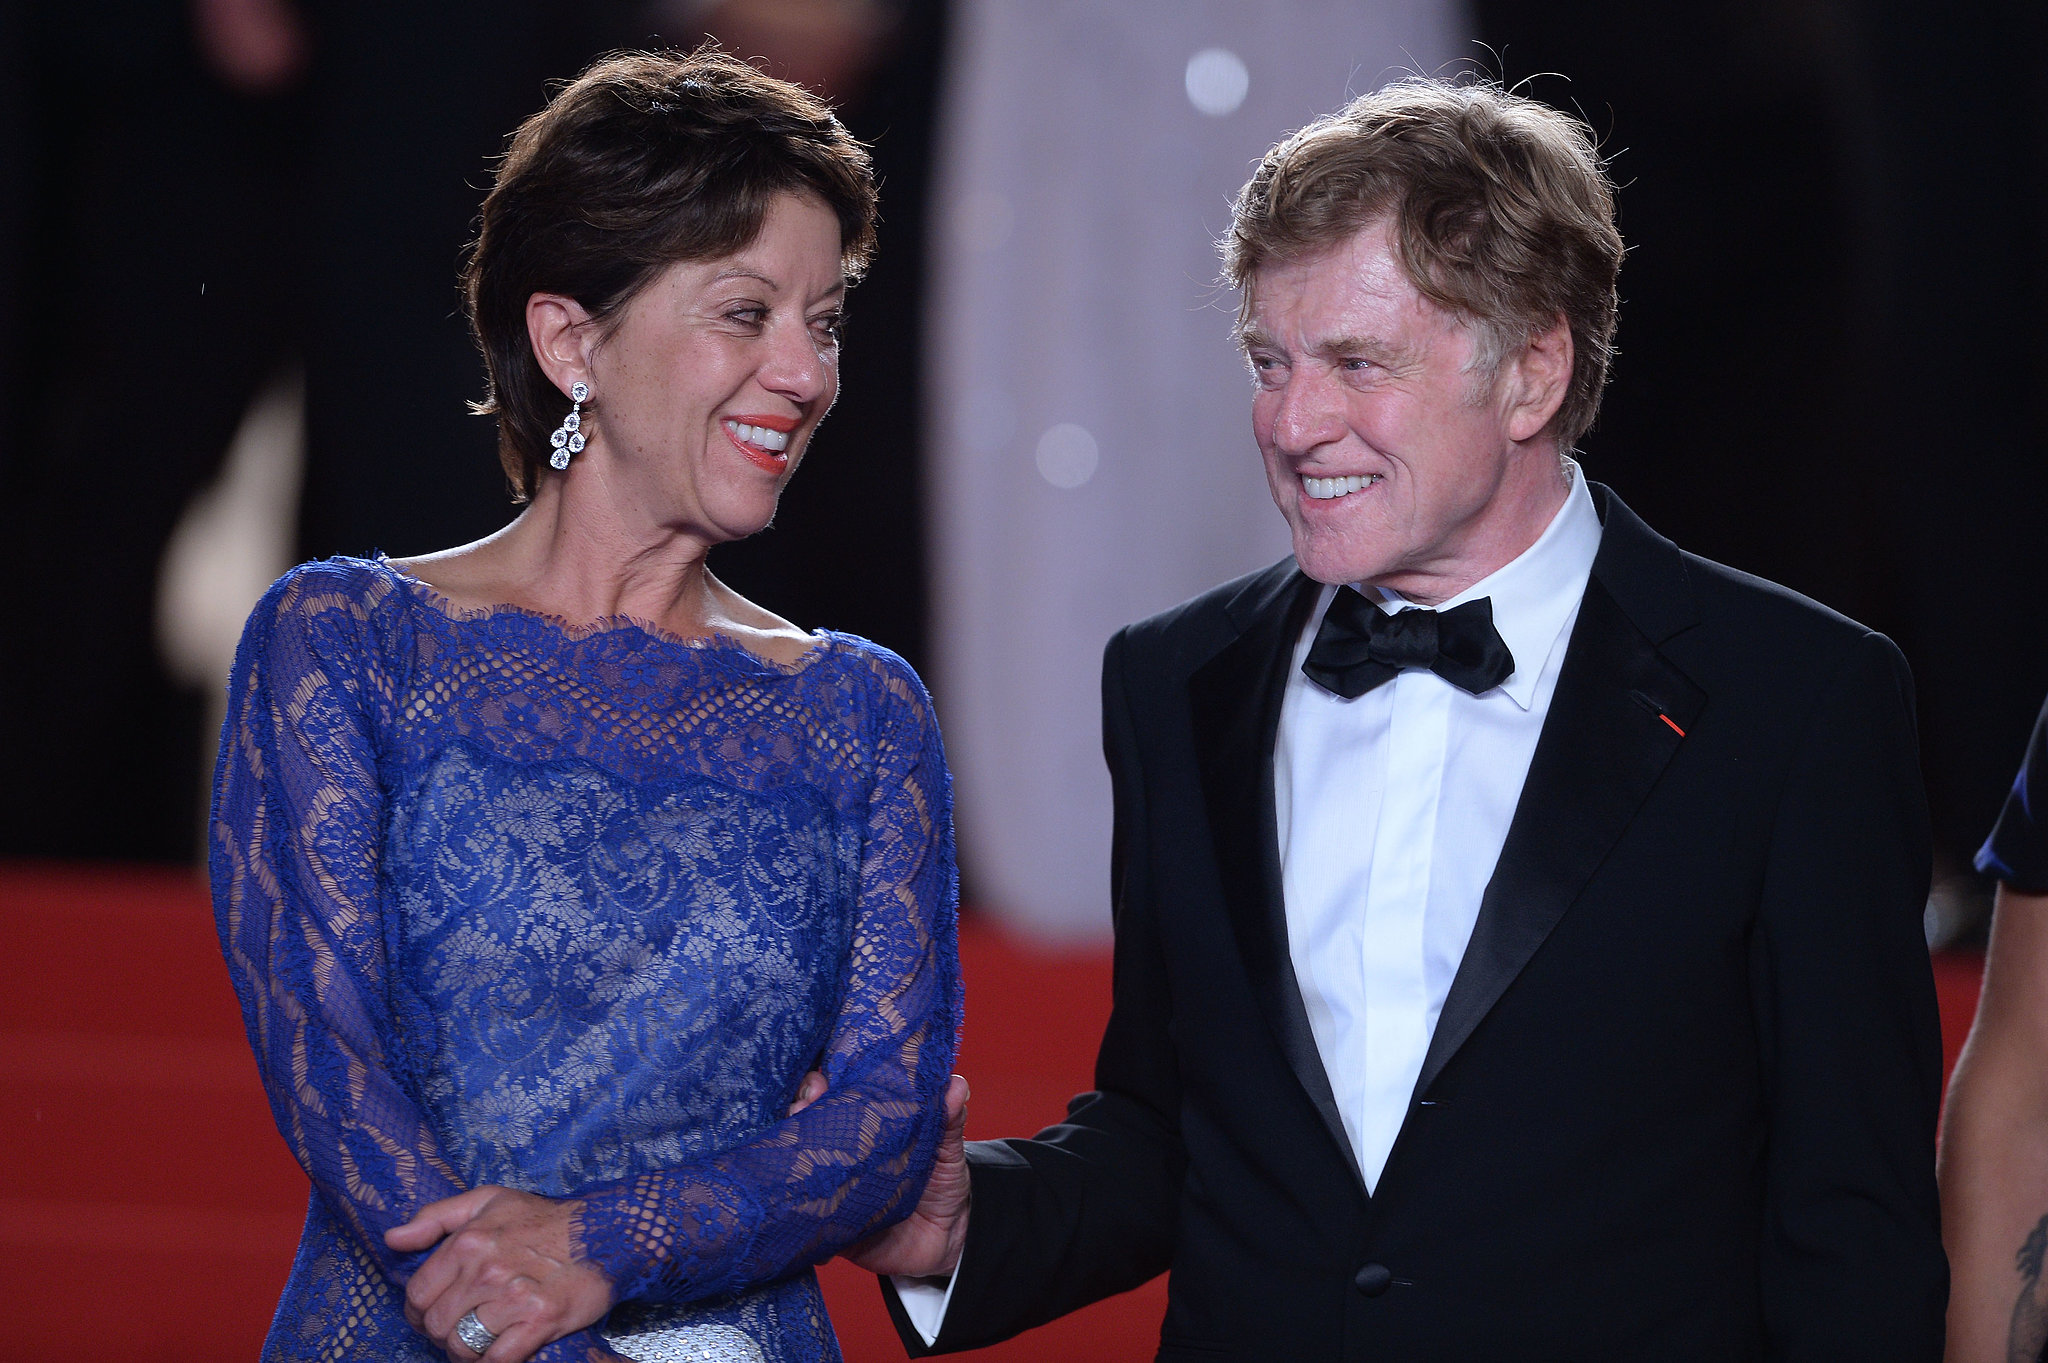 Robert Redford smiled with his wife, Sibylle Szaggars, at the All Is Lost premiere on Wednesday night in Cannes.